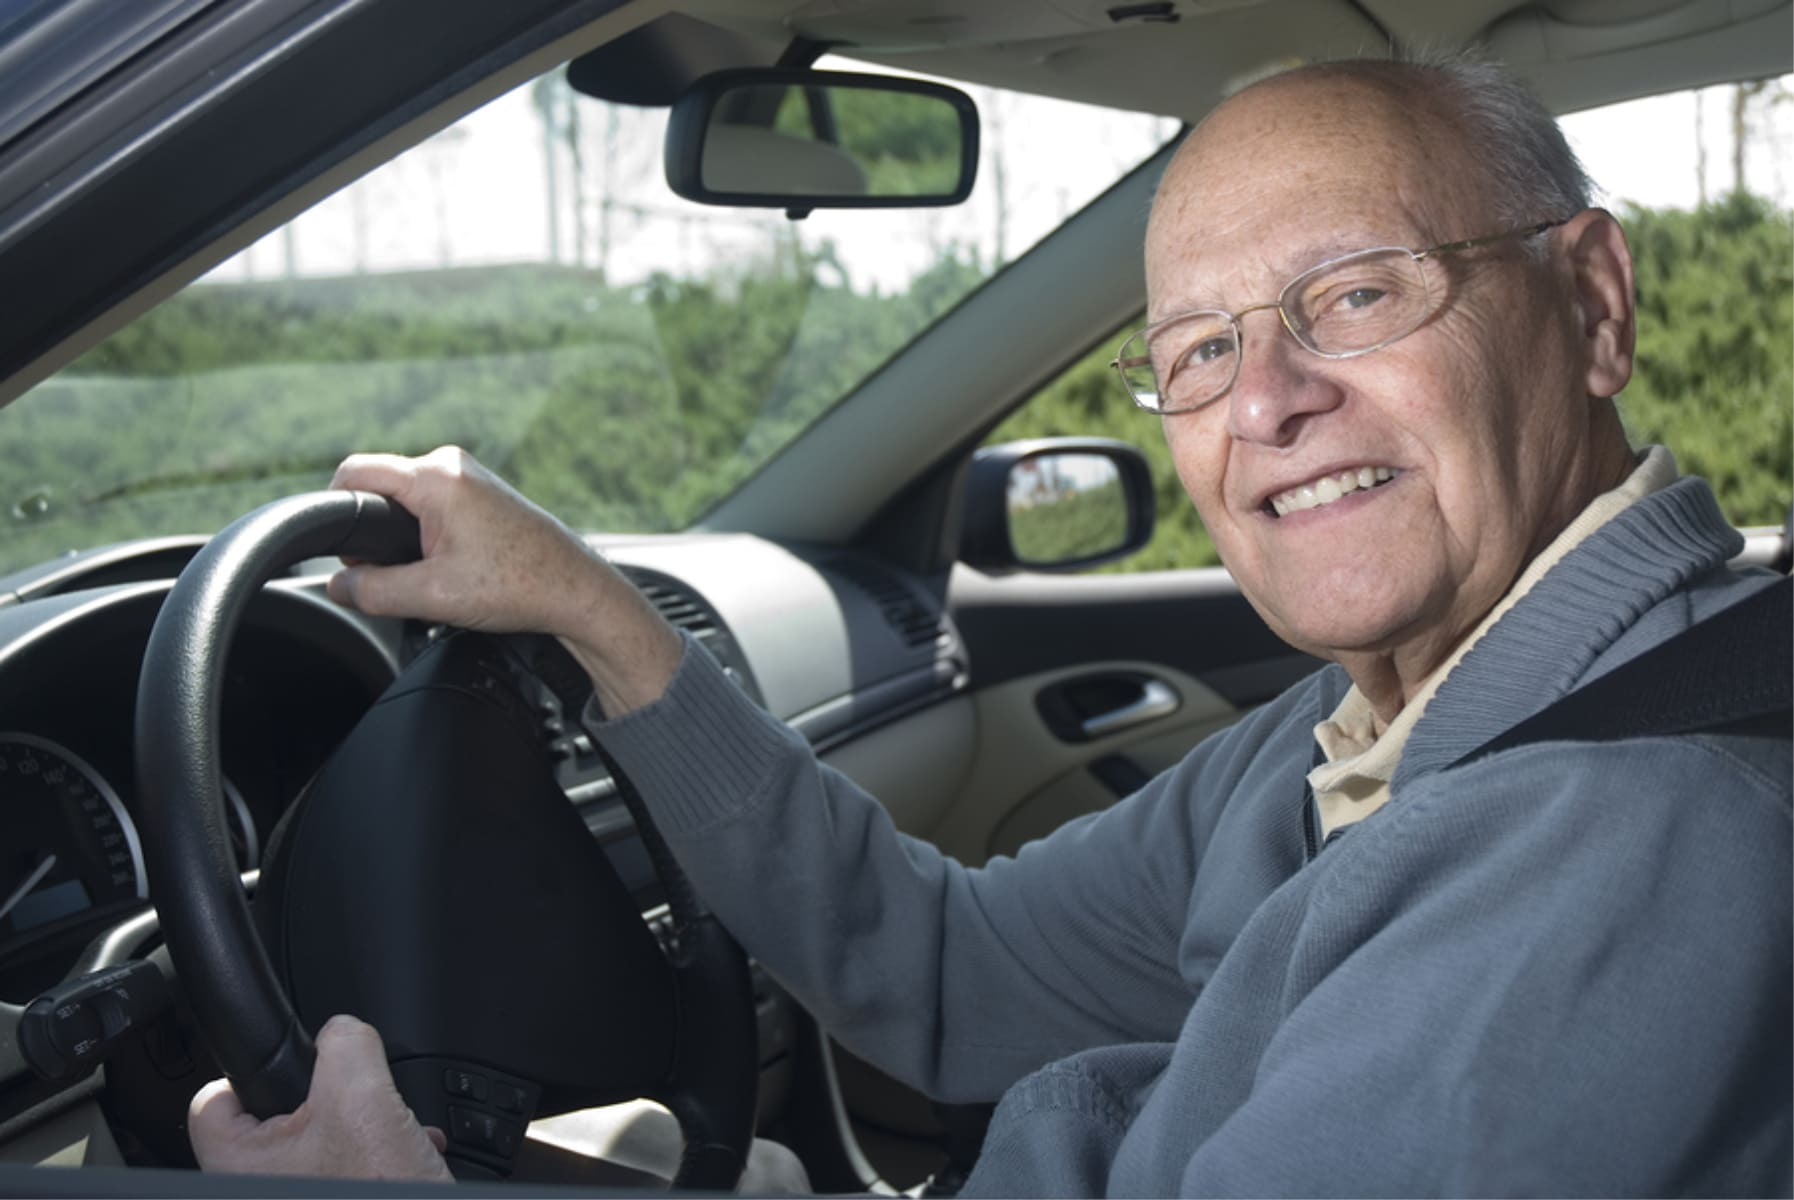 Home Care Services in Dacula GA: Driving Skills